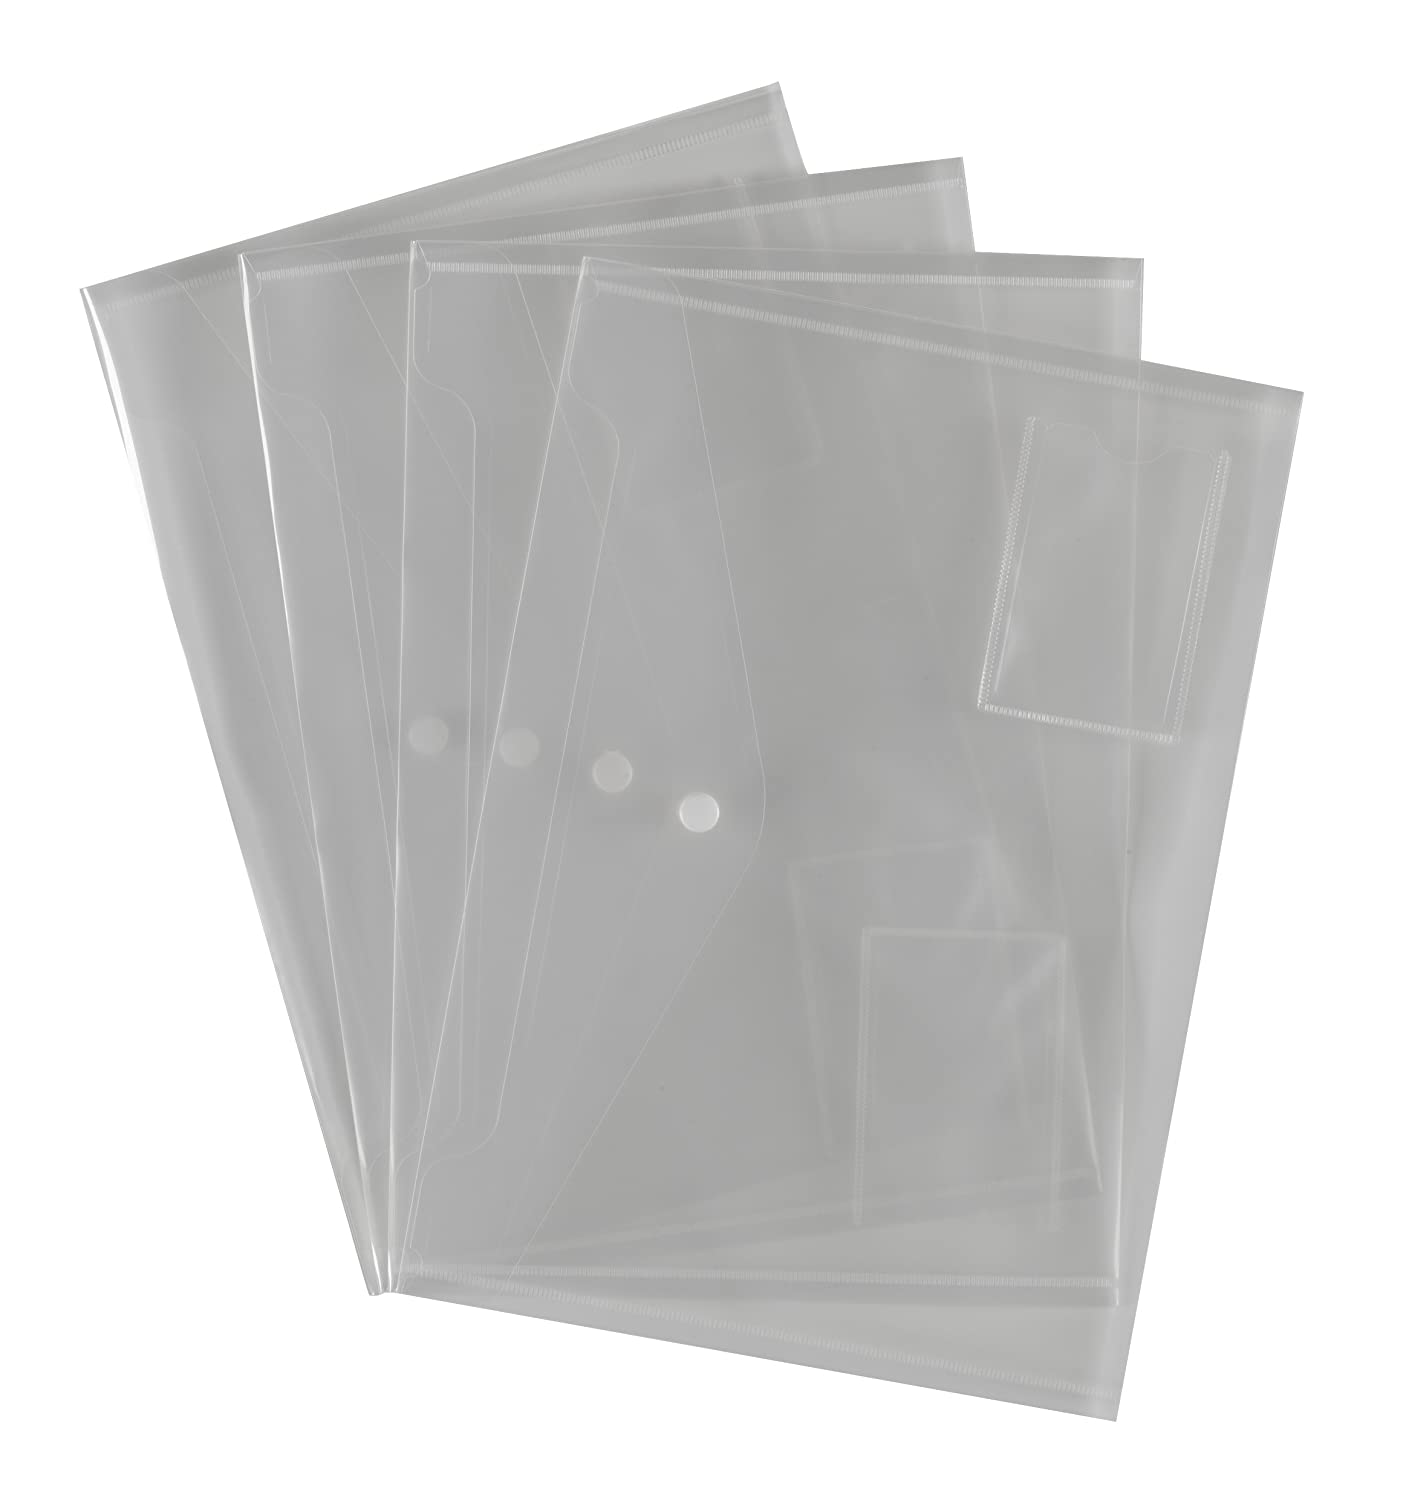 10 CLEAR LOGIT PLASTIC DOCUMENT WALLETS: Amazon.co.uk: Luggage